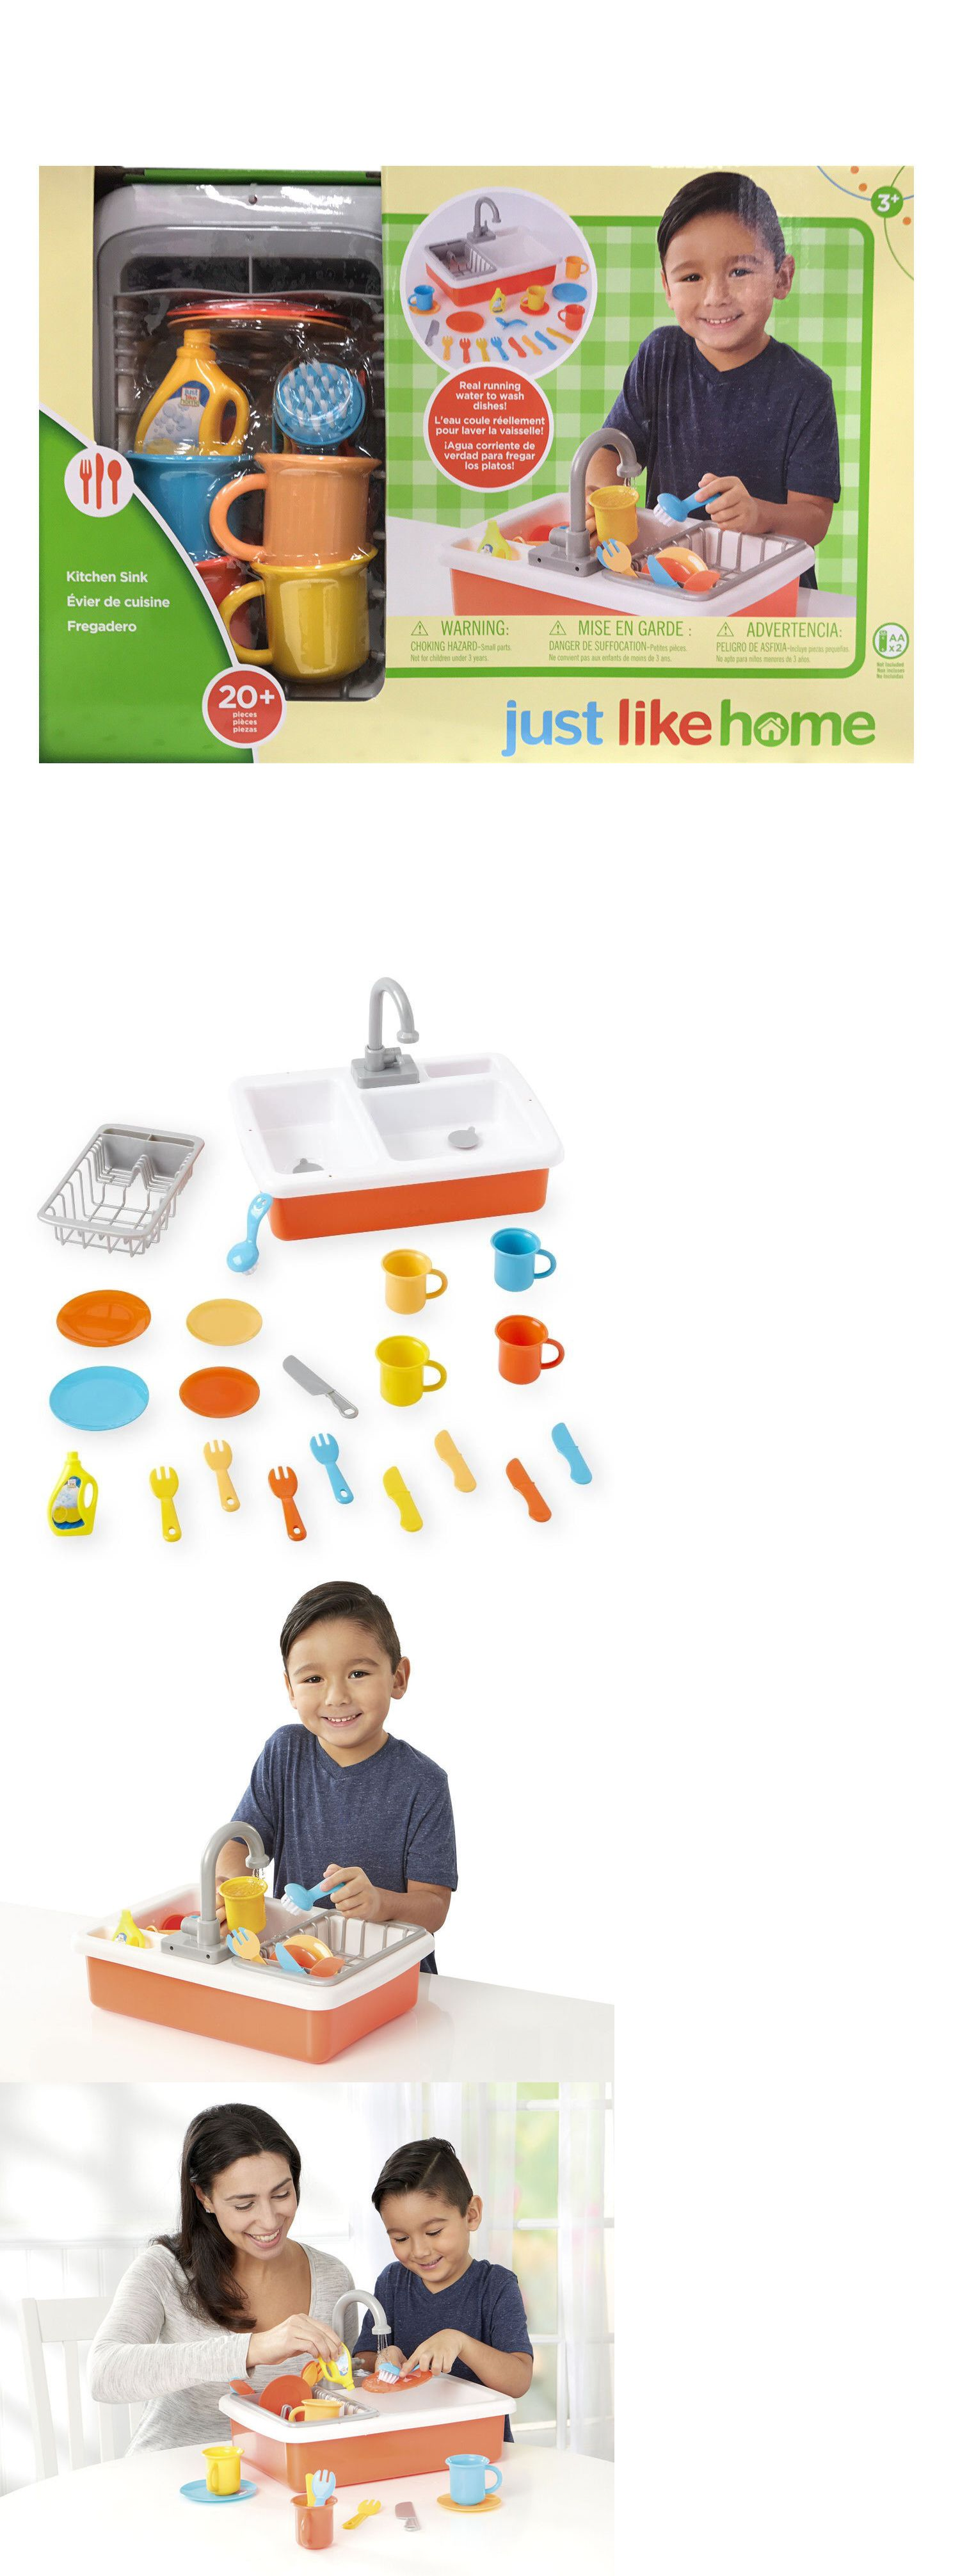 Kitchens Just Like Home Sink With Running Water And Dishes